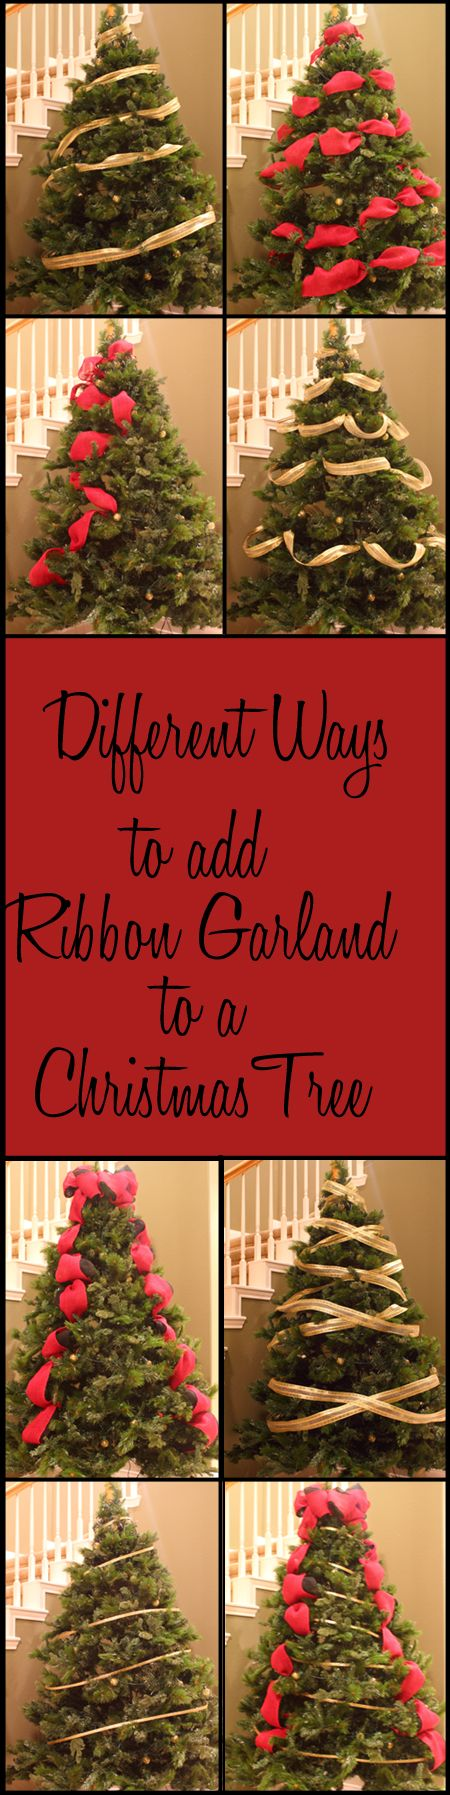 Different ways to add ribbon garland to a christmas tree How to hang garland on a christmas tree